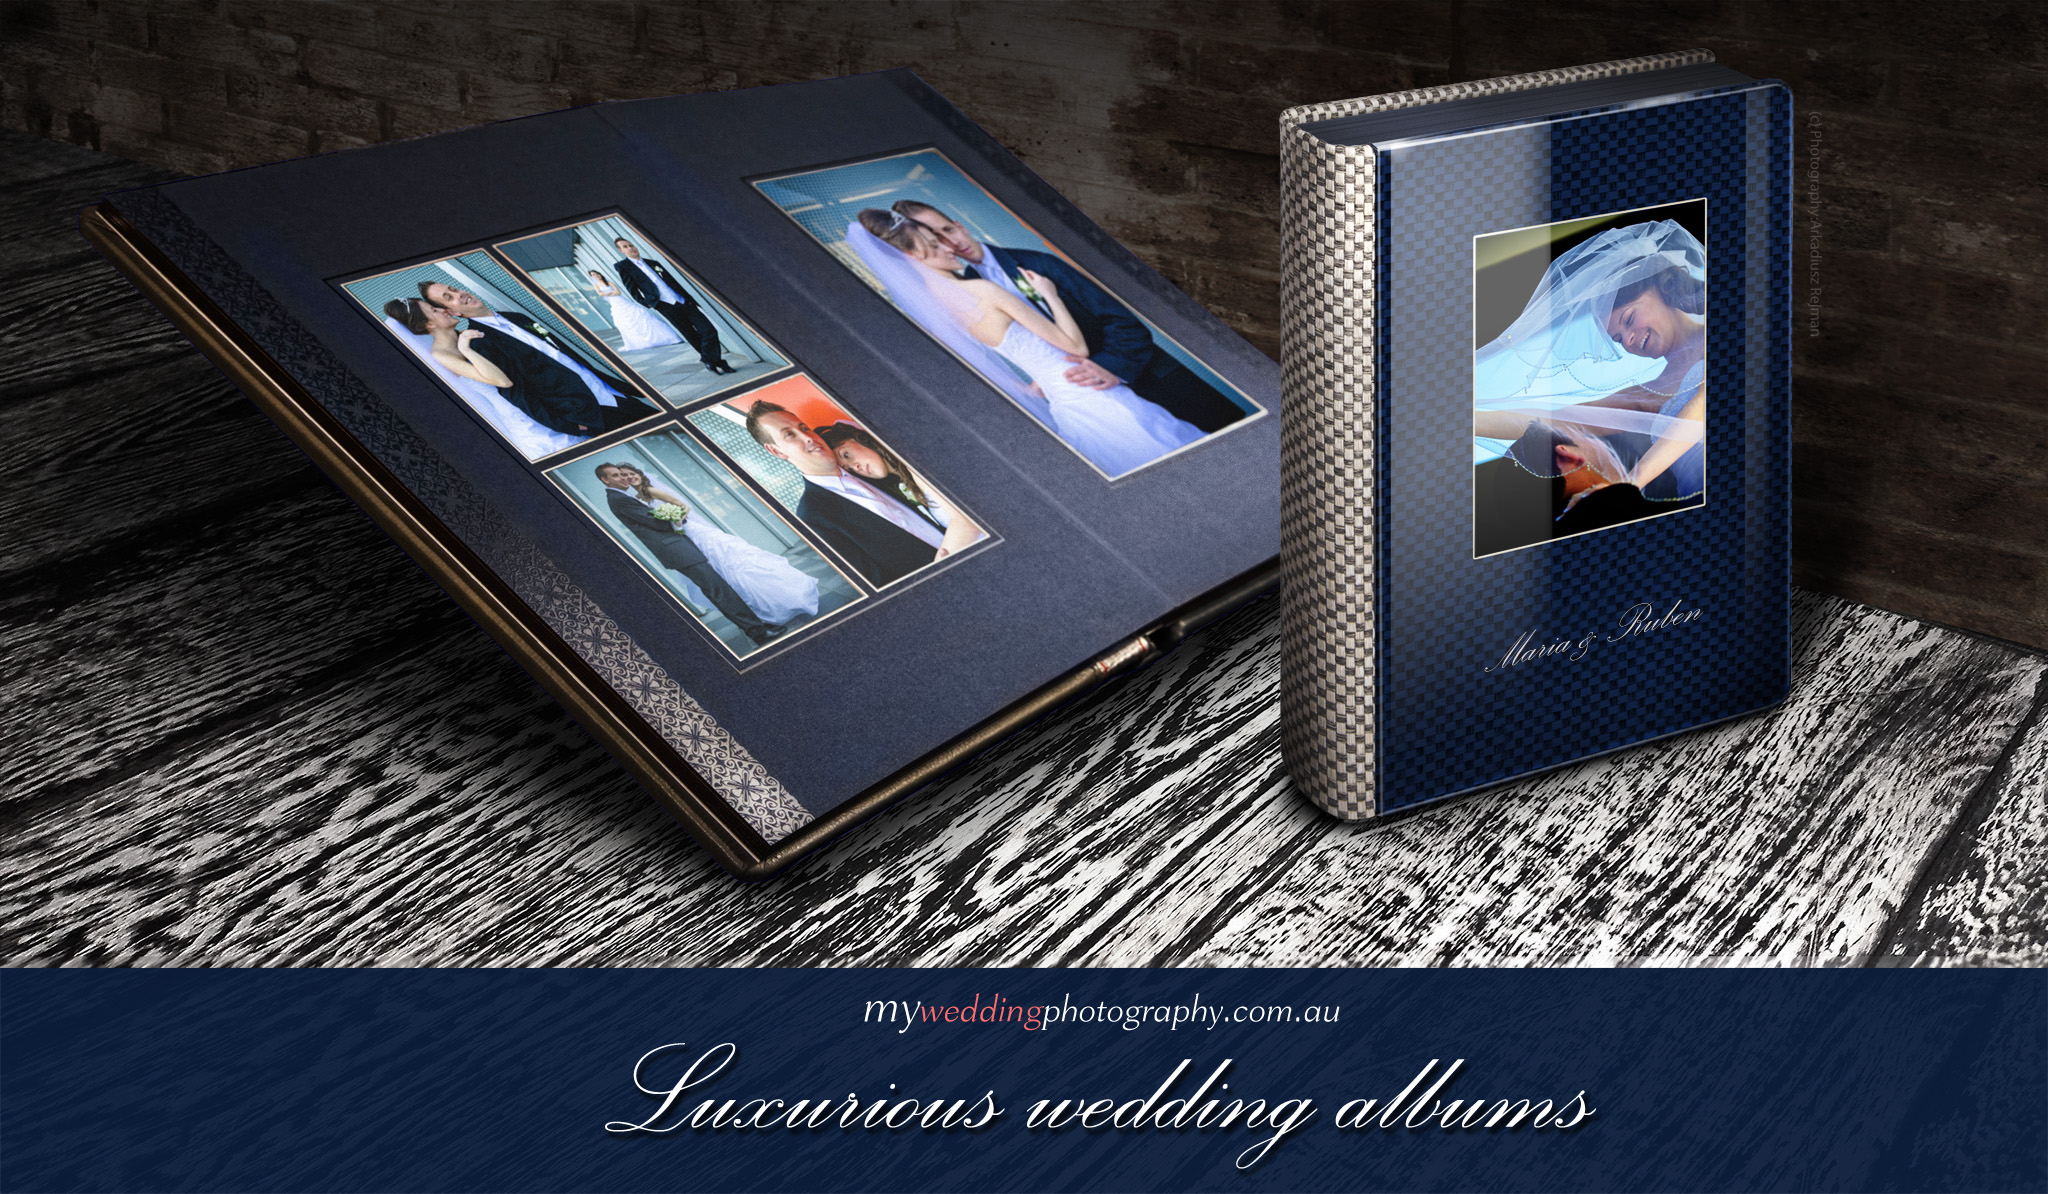 new luxourious wedding albums range wedding photography melbourne melbourne. Black Bedroom Furniture Sets. Home Design Ideas